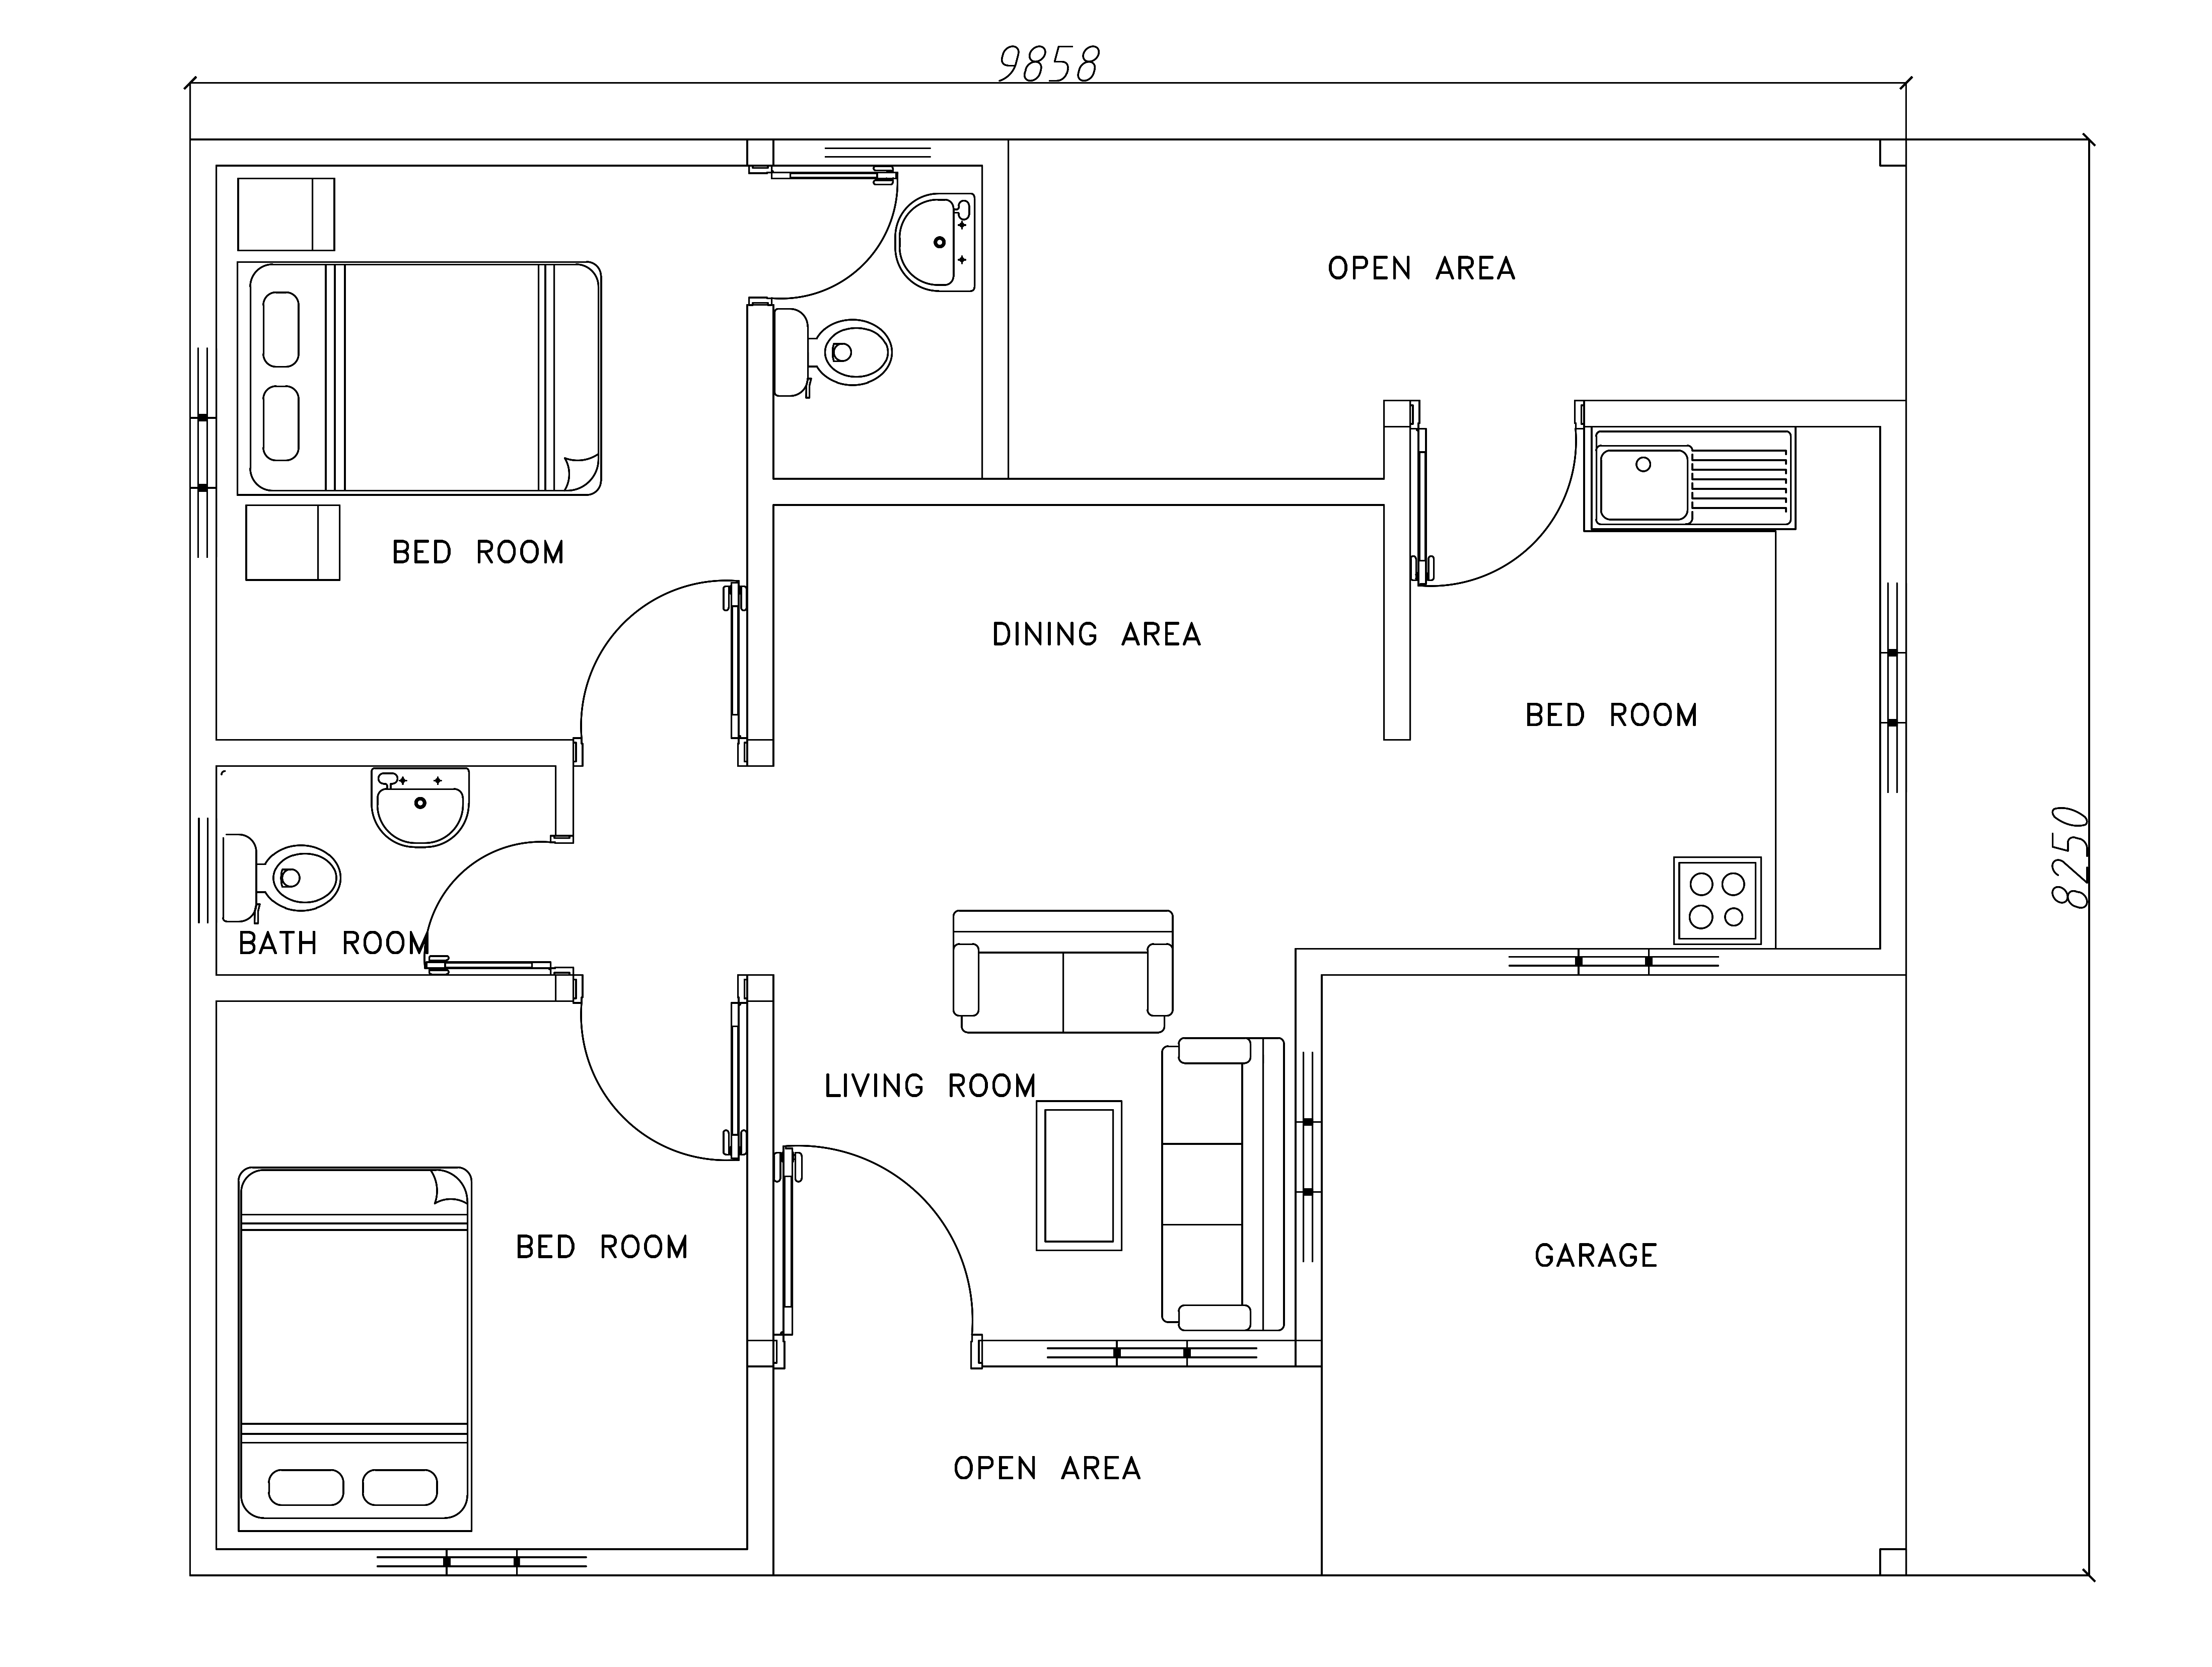 House plans ground floor only House floor plan design software free download